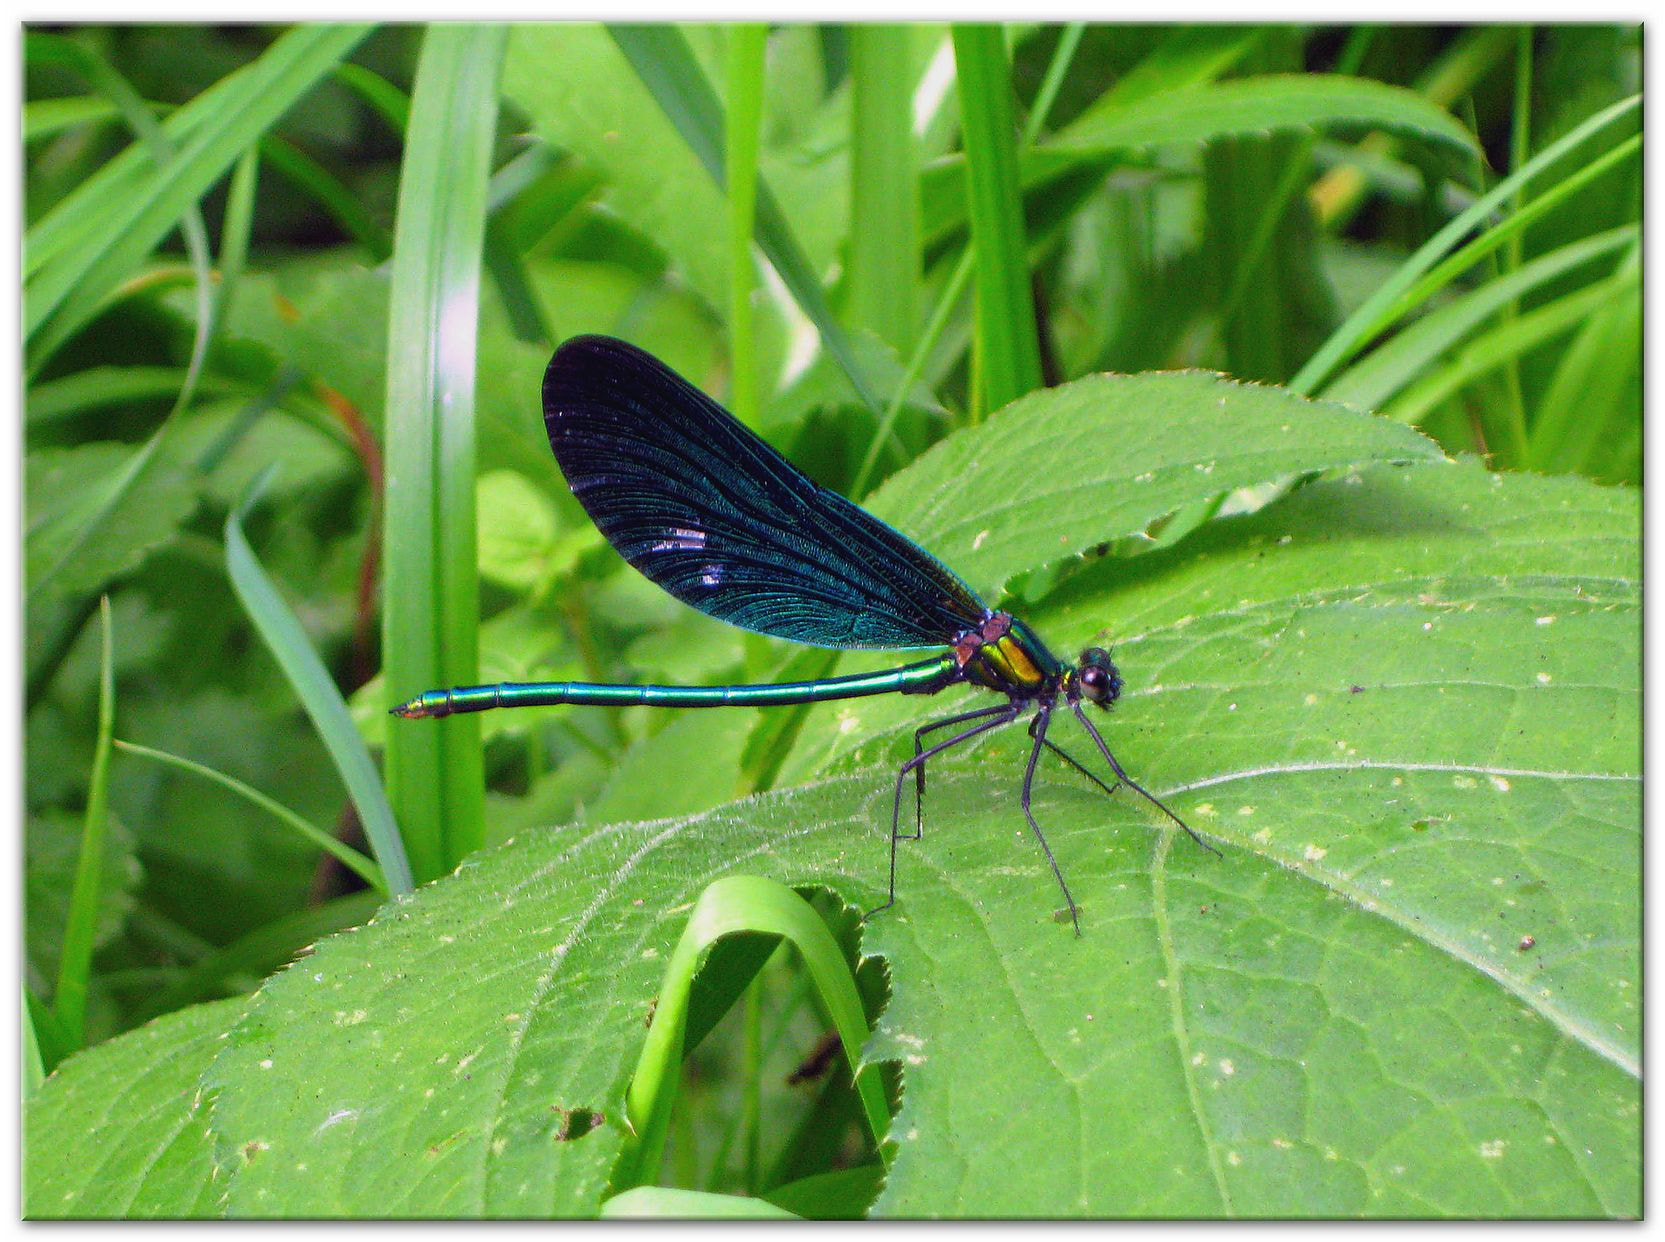 Photograph Dragonfly by Kirsten F. on 500px